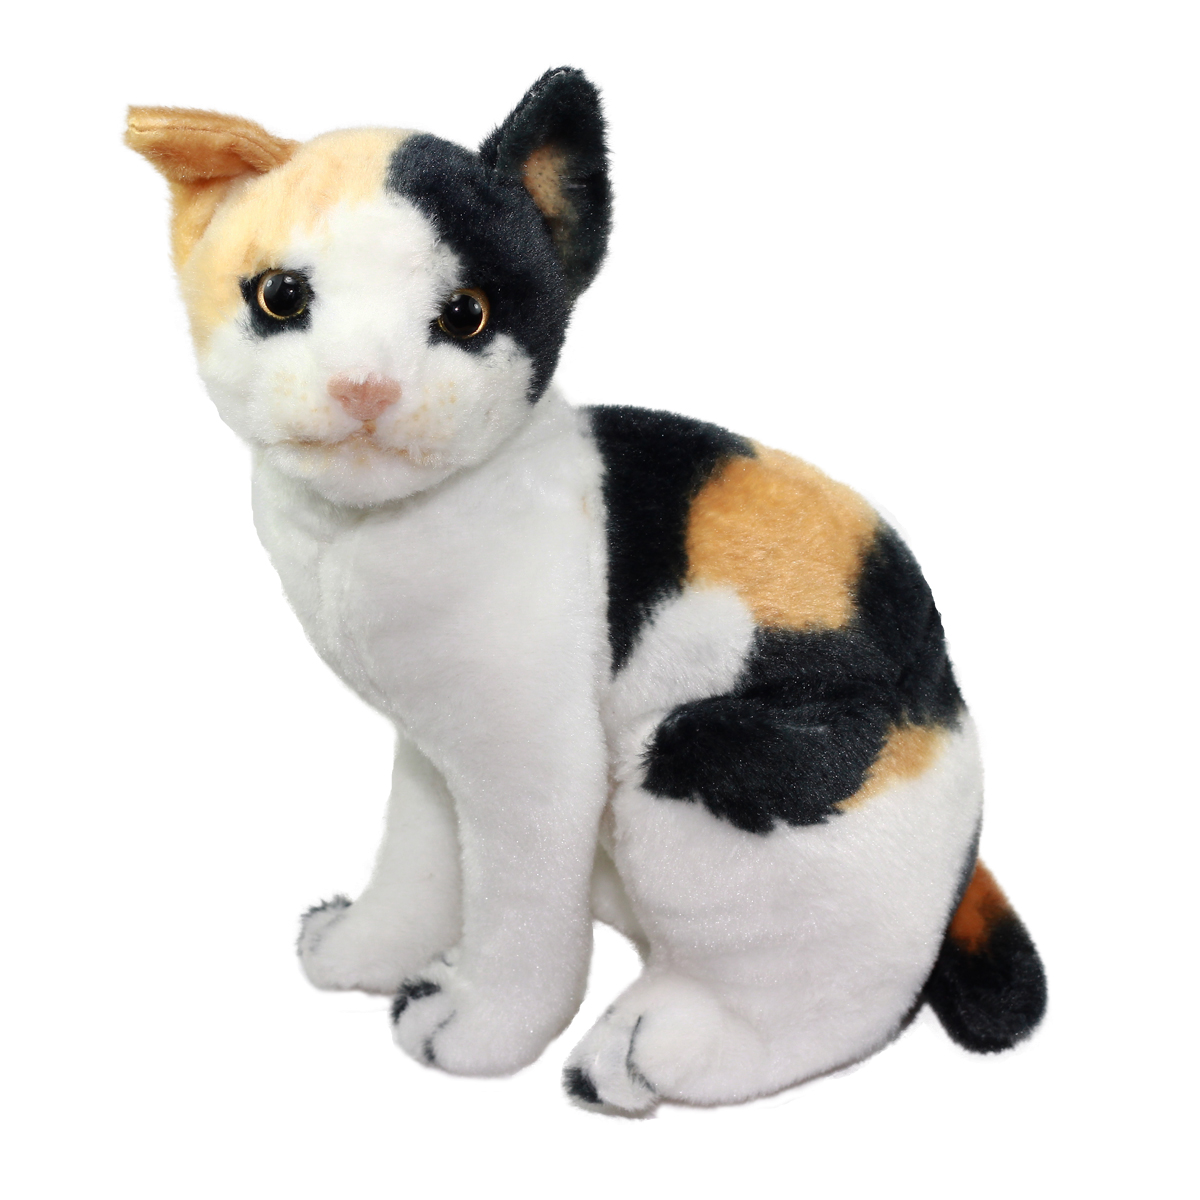 Real Cat Plush Collection Stuffed Animal Toy White/Beige/Black Mix Japanese Bobtail Short Hair Cat 10 Inches